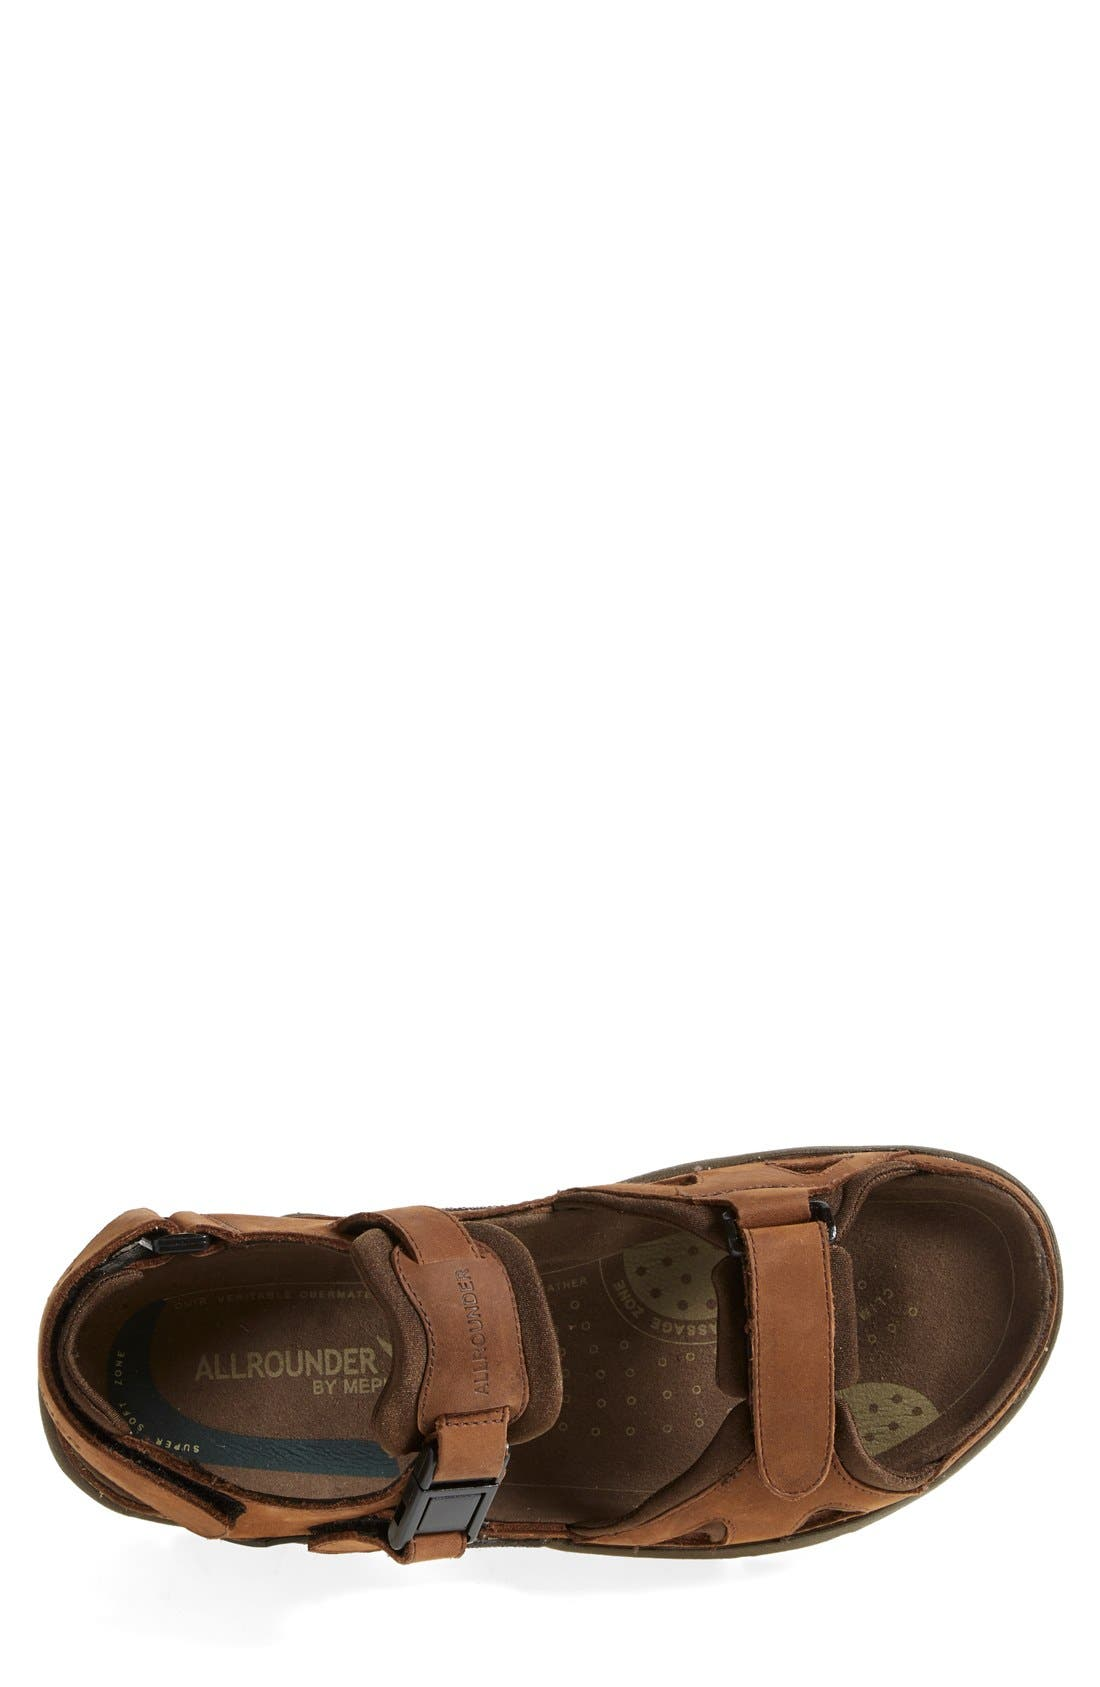 Alternate Image 3  - Allrounder by Mephisto 'Alligator' Sandal (Men)